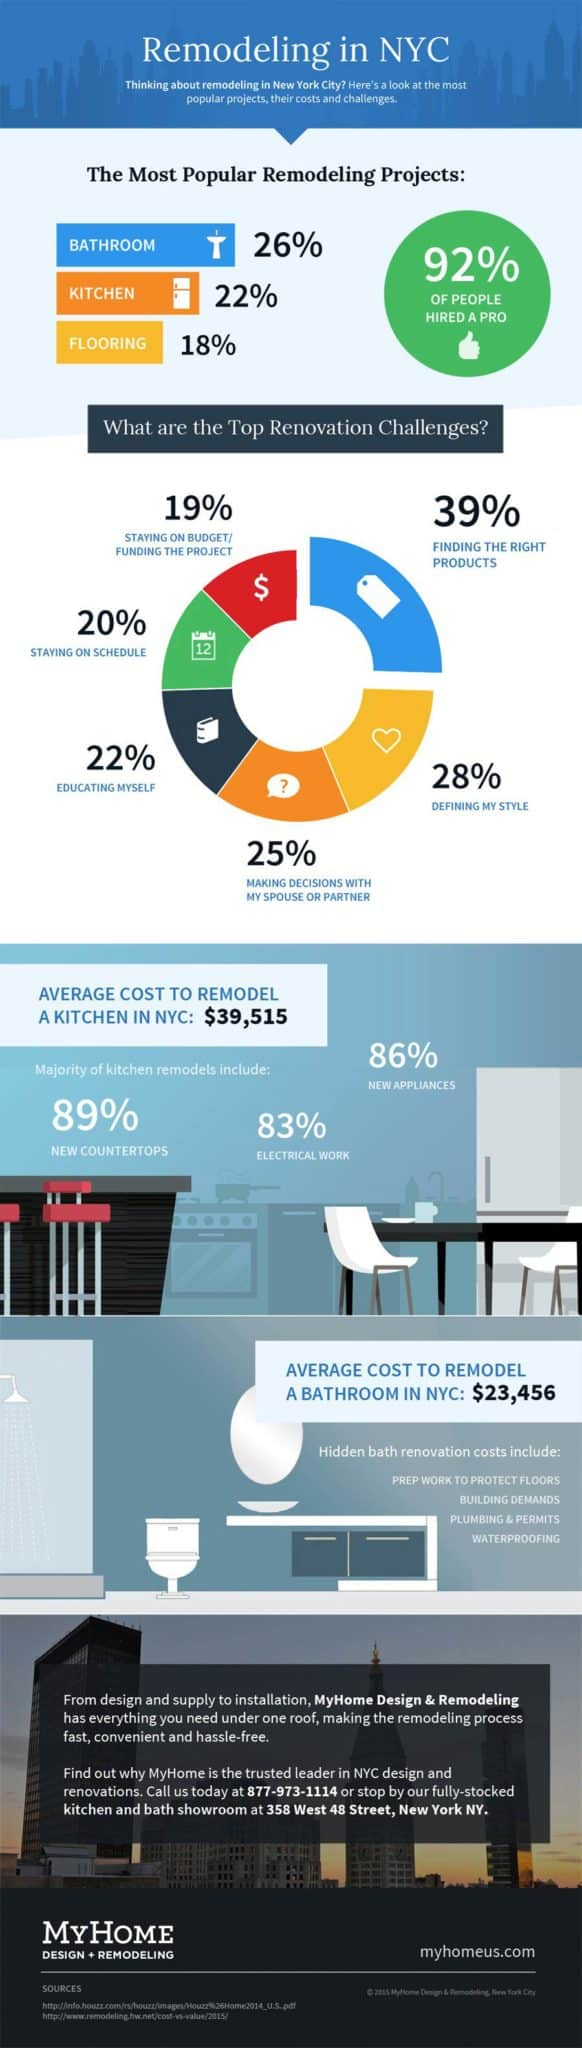 cost-to-remodel-in-nyc-infographic